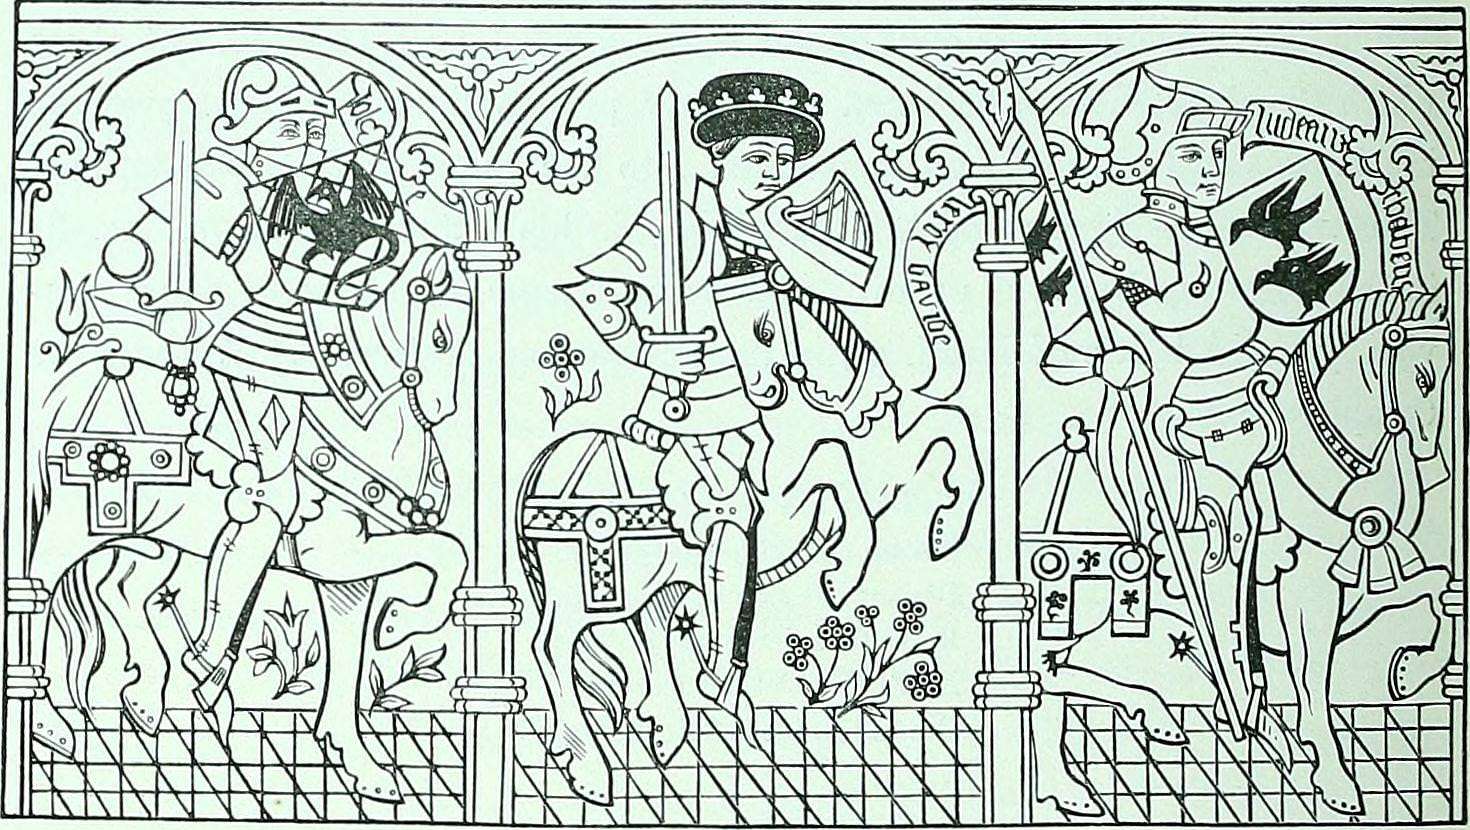 Coloring Pages about the Middle Ages - Medievalists.net